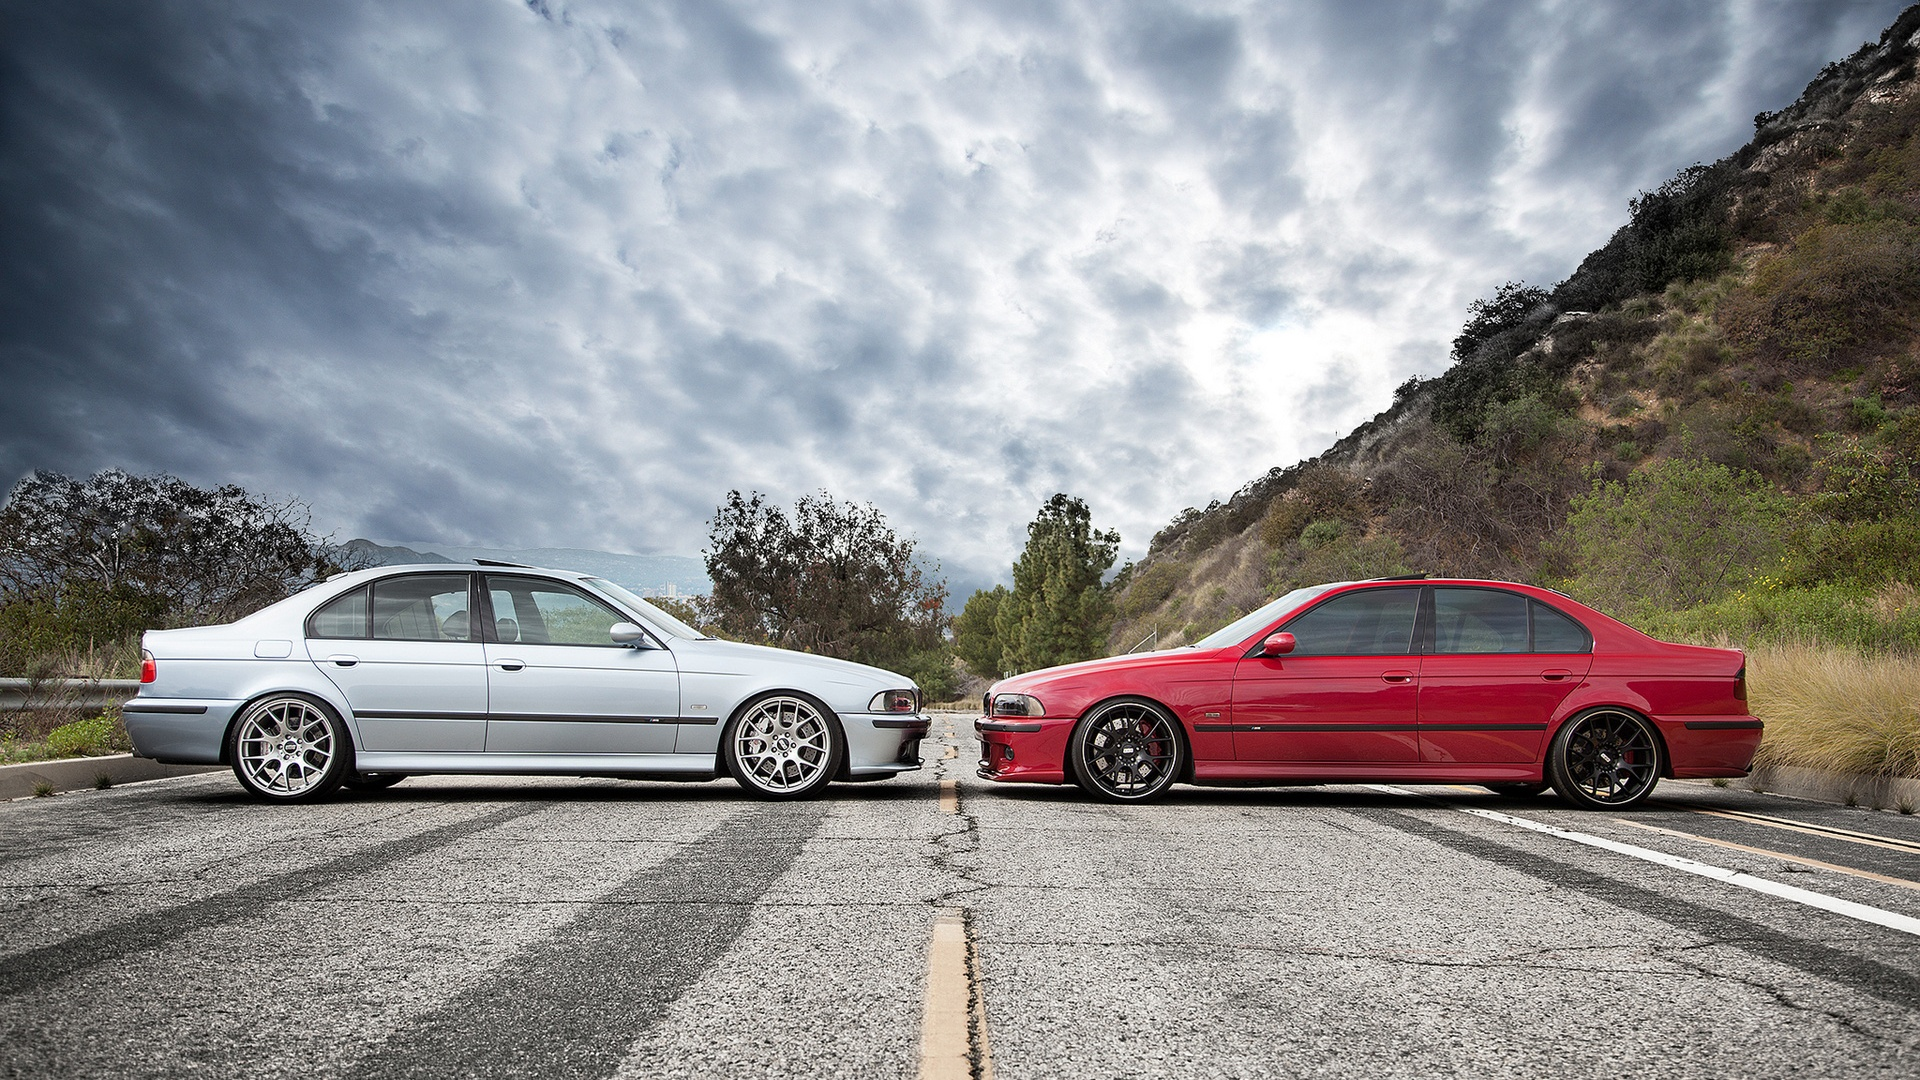 Wallpaper Bmw M5 E39 Red And Blue Car 1920x1200 Hd Picture